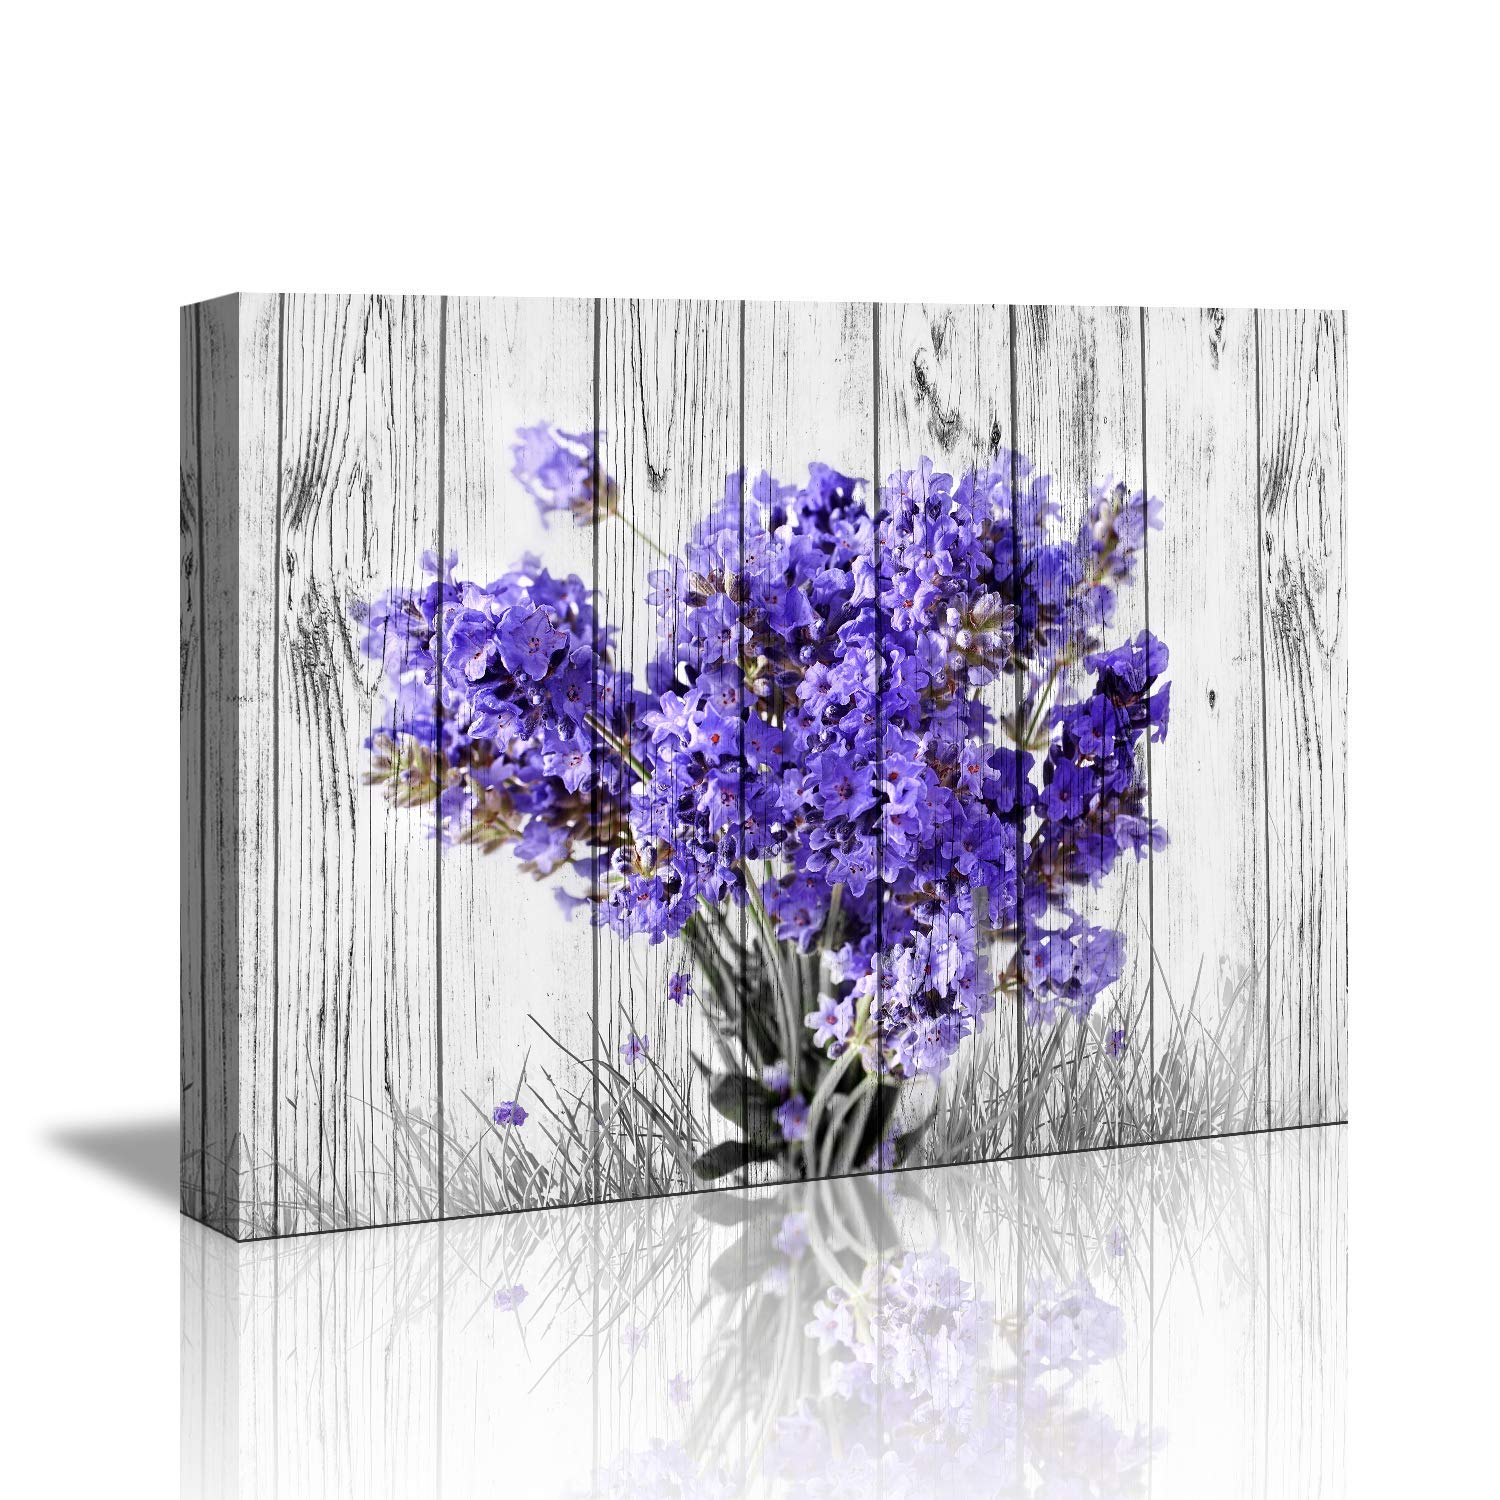 """Purple Lavender Wall Decor for Bedroom Rustic Home Decor Canvas Wall Art -12""""x16"""" Purple Lavender Flowers on Vintage Wood Background Modern Living Room/Bedroom Decoration Stretched and Ready to Hang"""